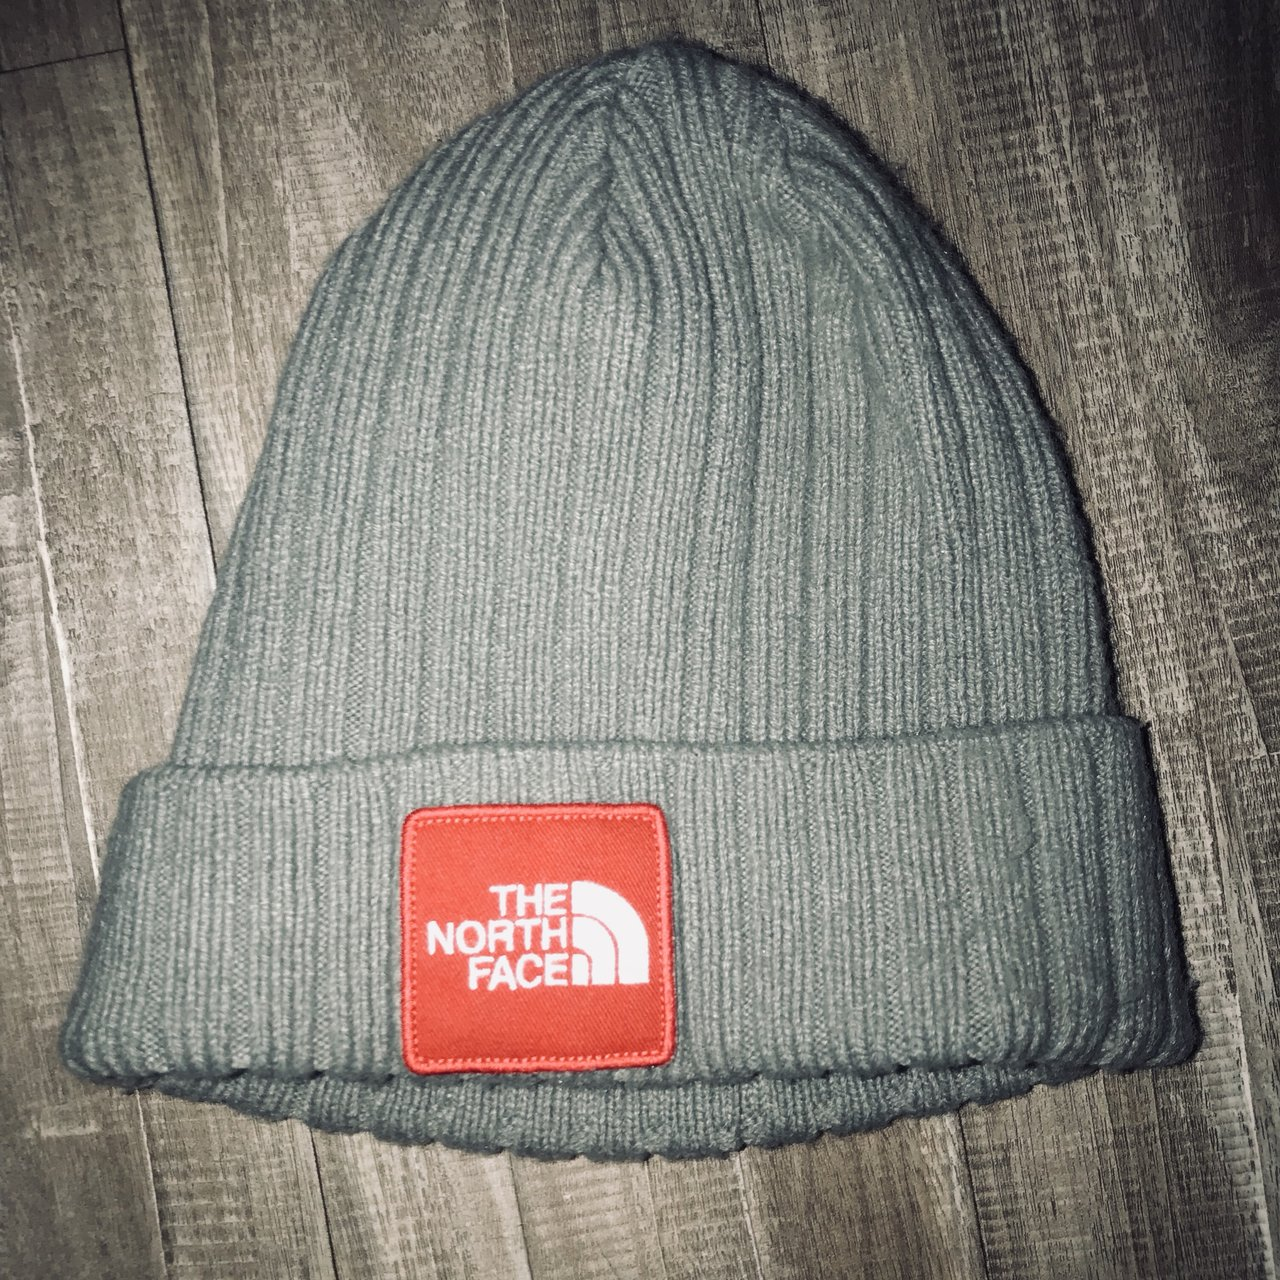 North face beanie!! Its in great condition. Only have worn - Depop c9cb9665c9b3